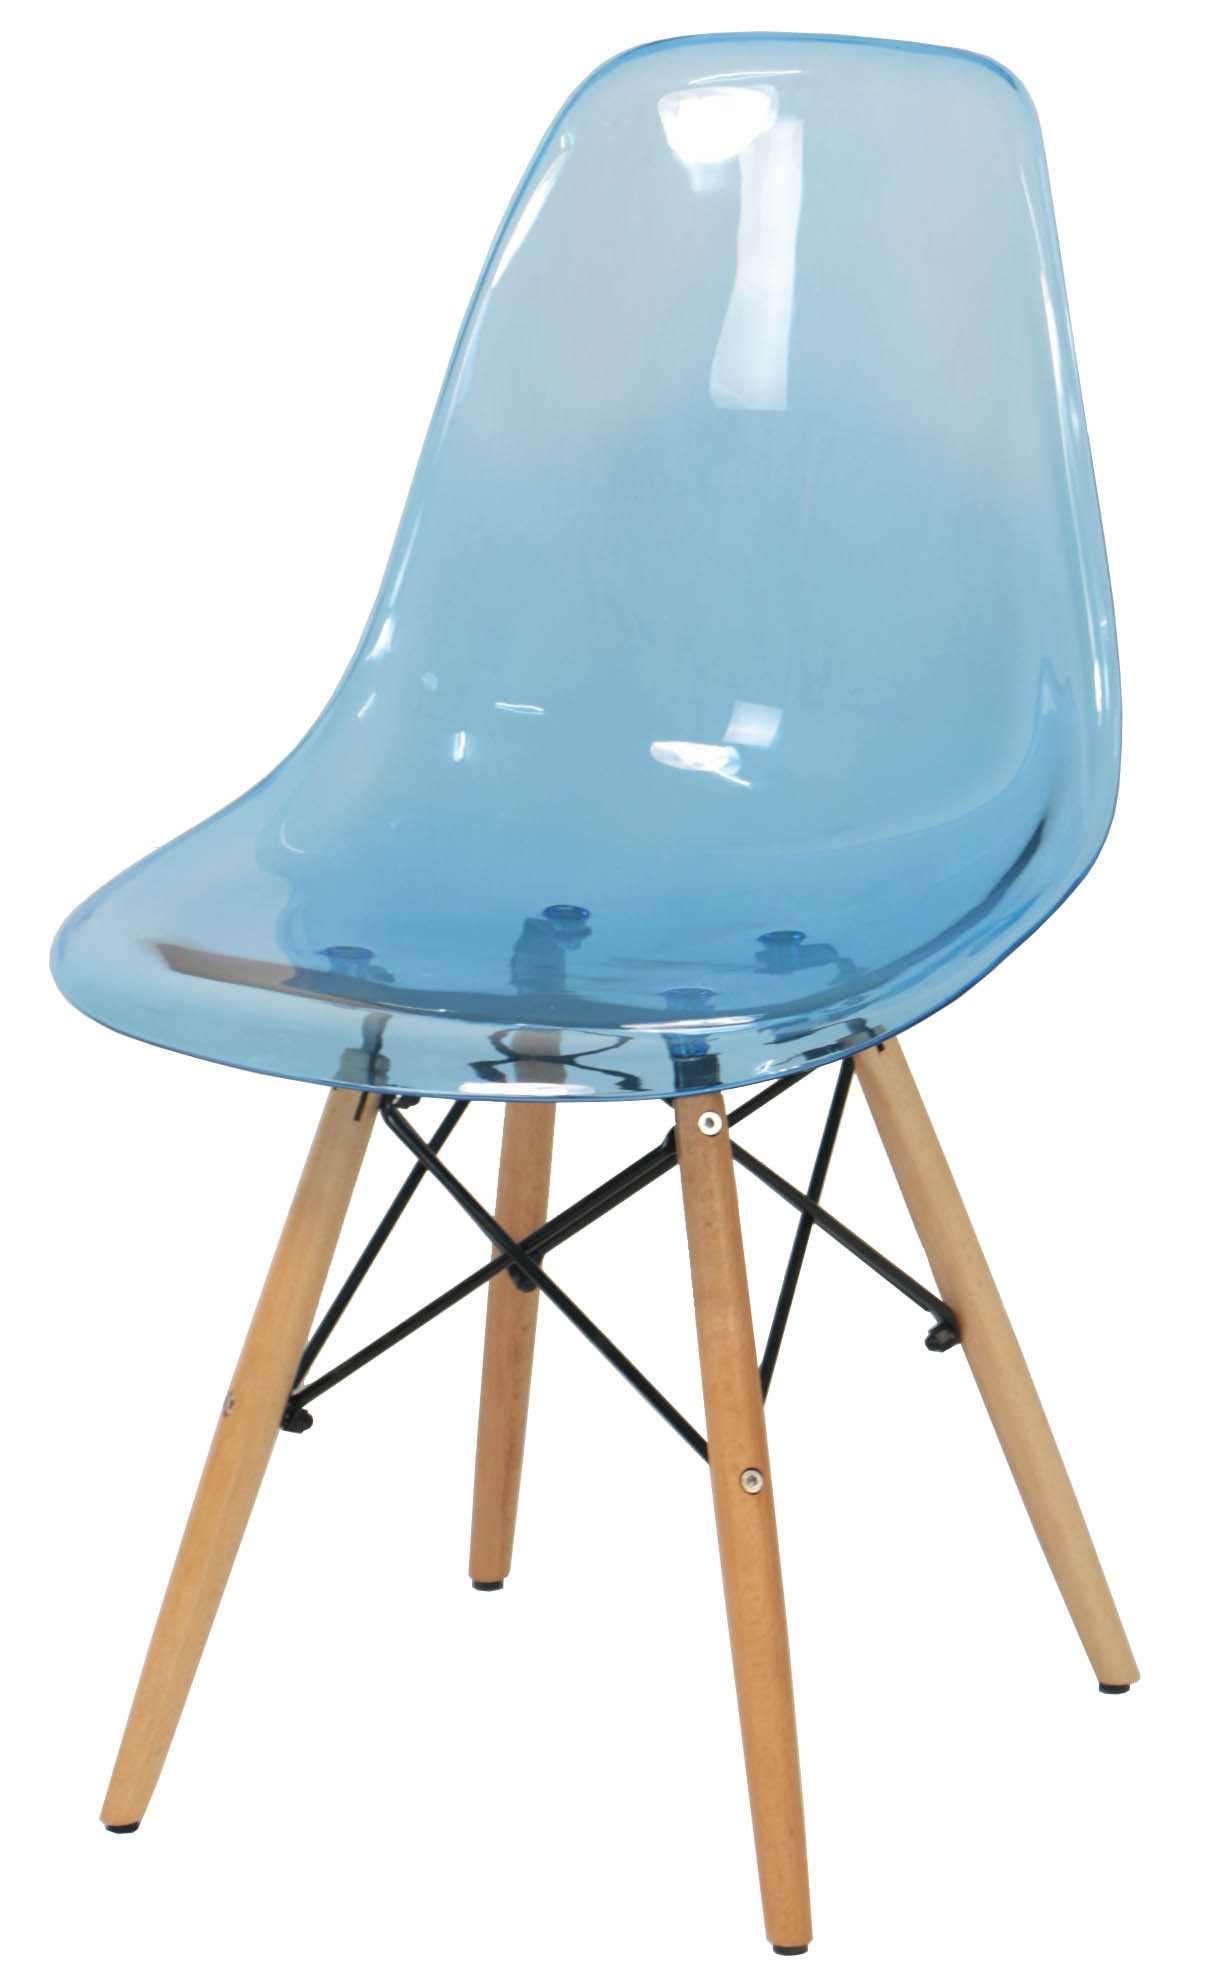 Eames clear blue replica designer chair dining chairs for Imitation designer chairs